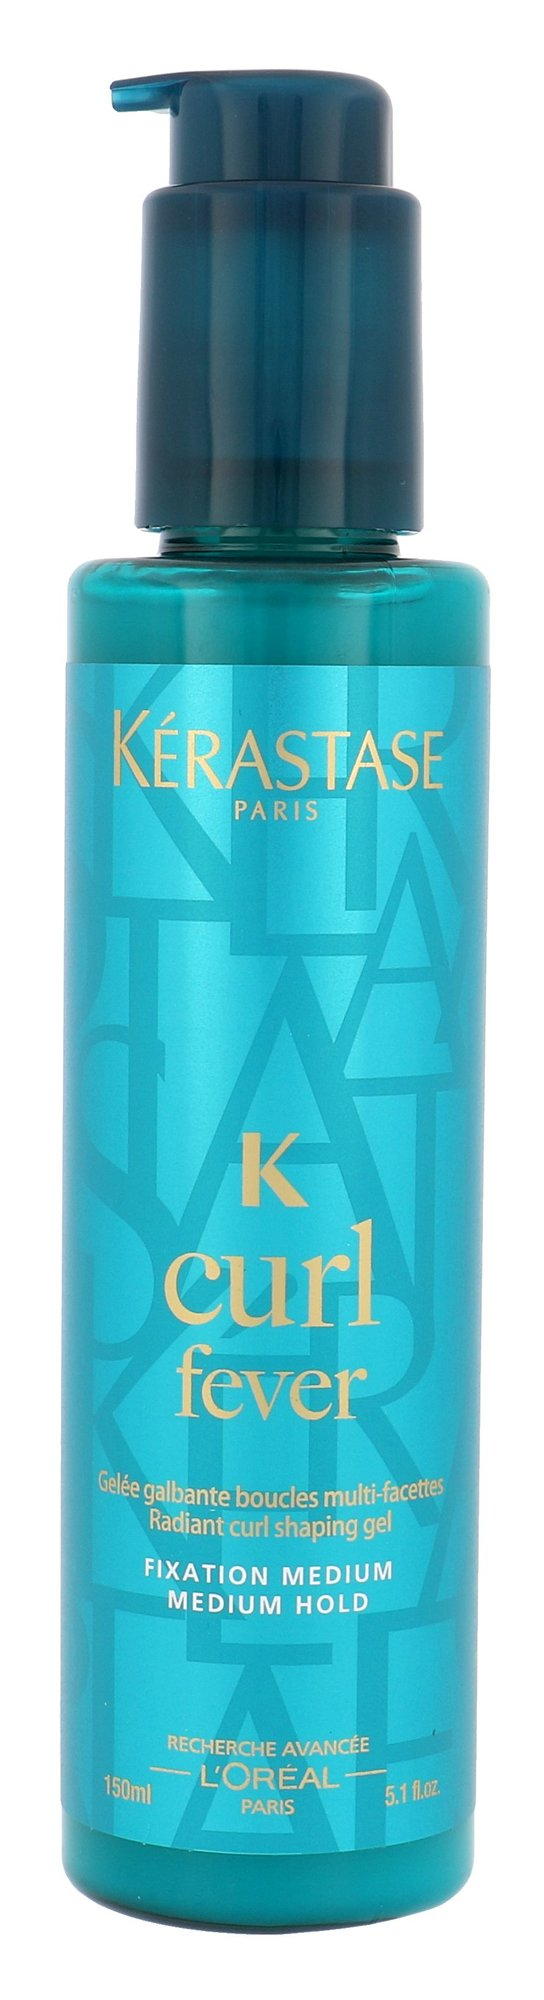 Kérastase Curl Fever Cosmetic 150ml